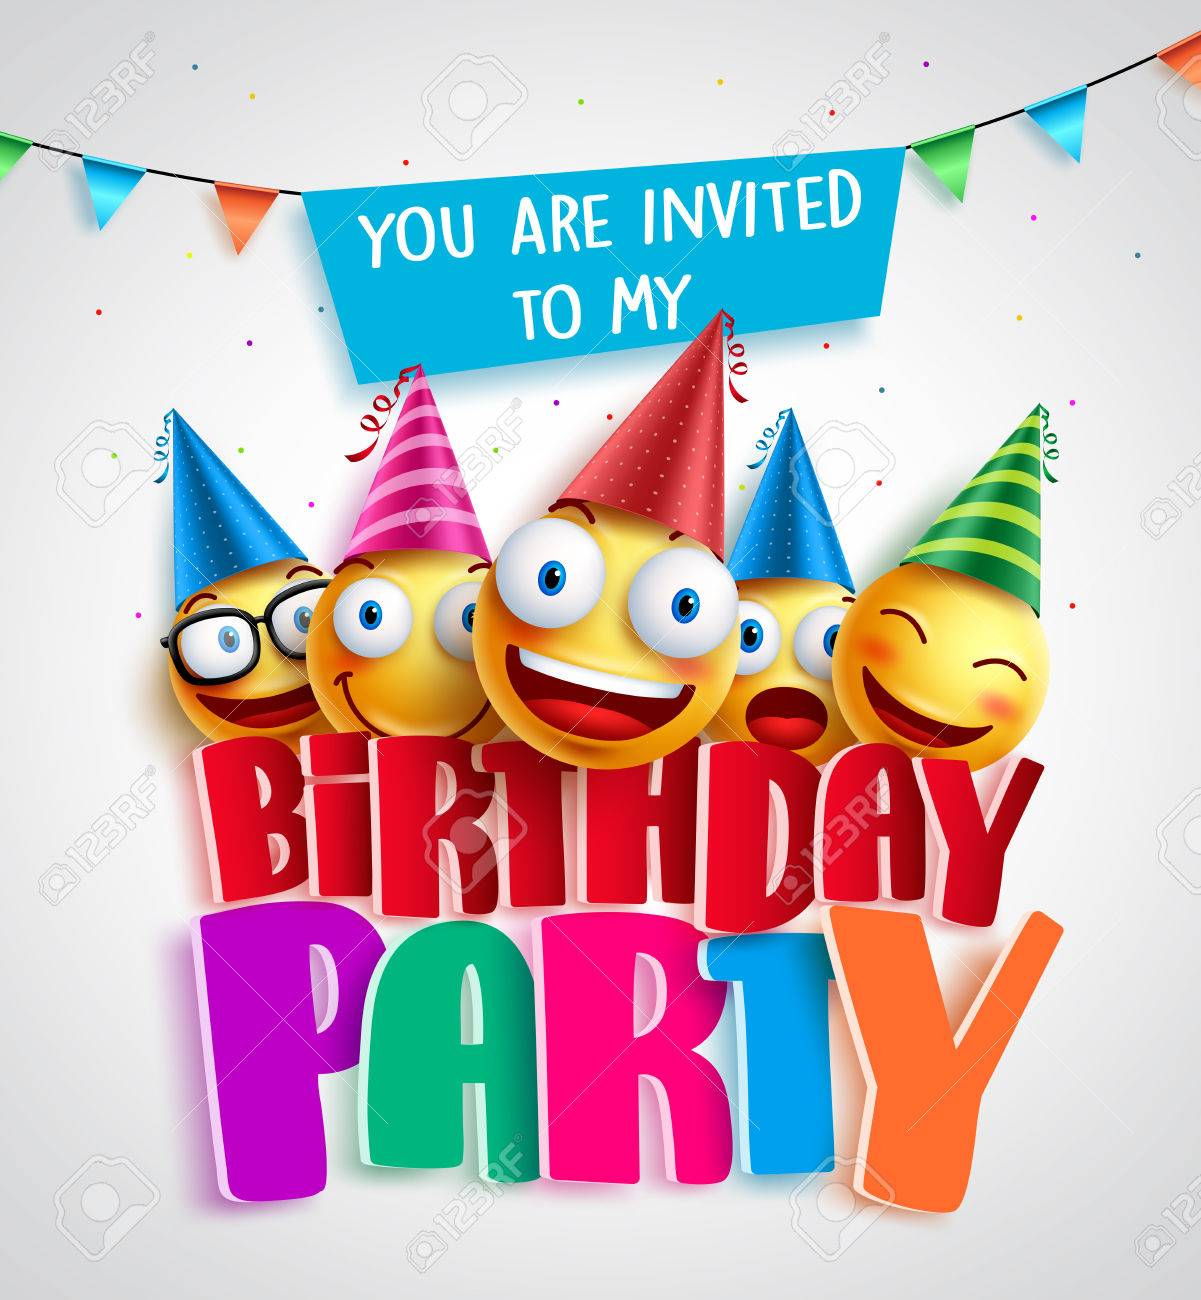 Birthday Party Invitation Vector Design With Happy Smileys Wearing Colorful Hats In 3D Text